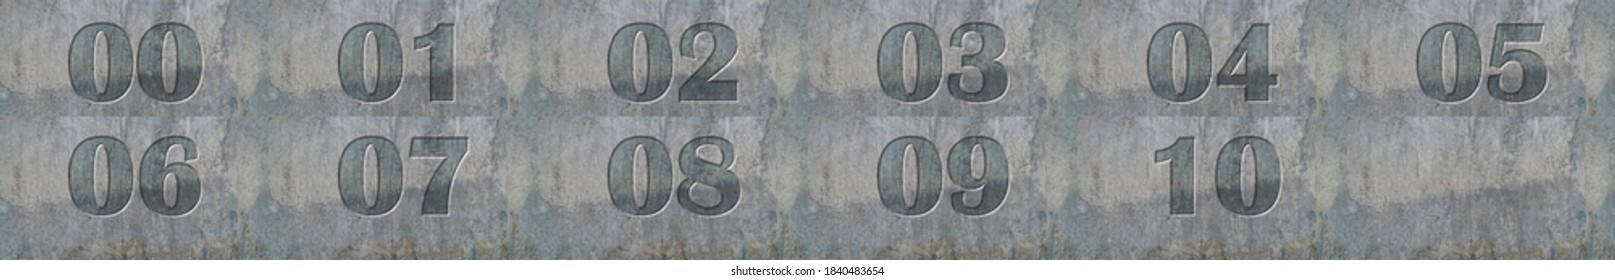 Number on a concrete background.